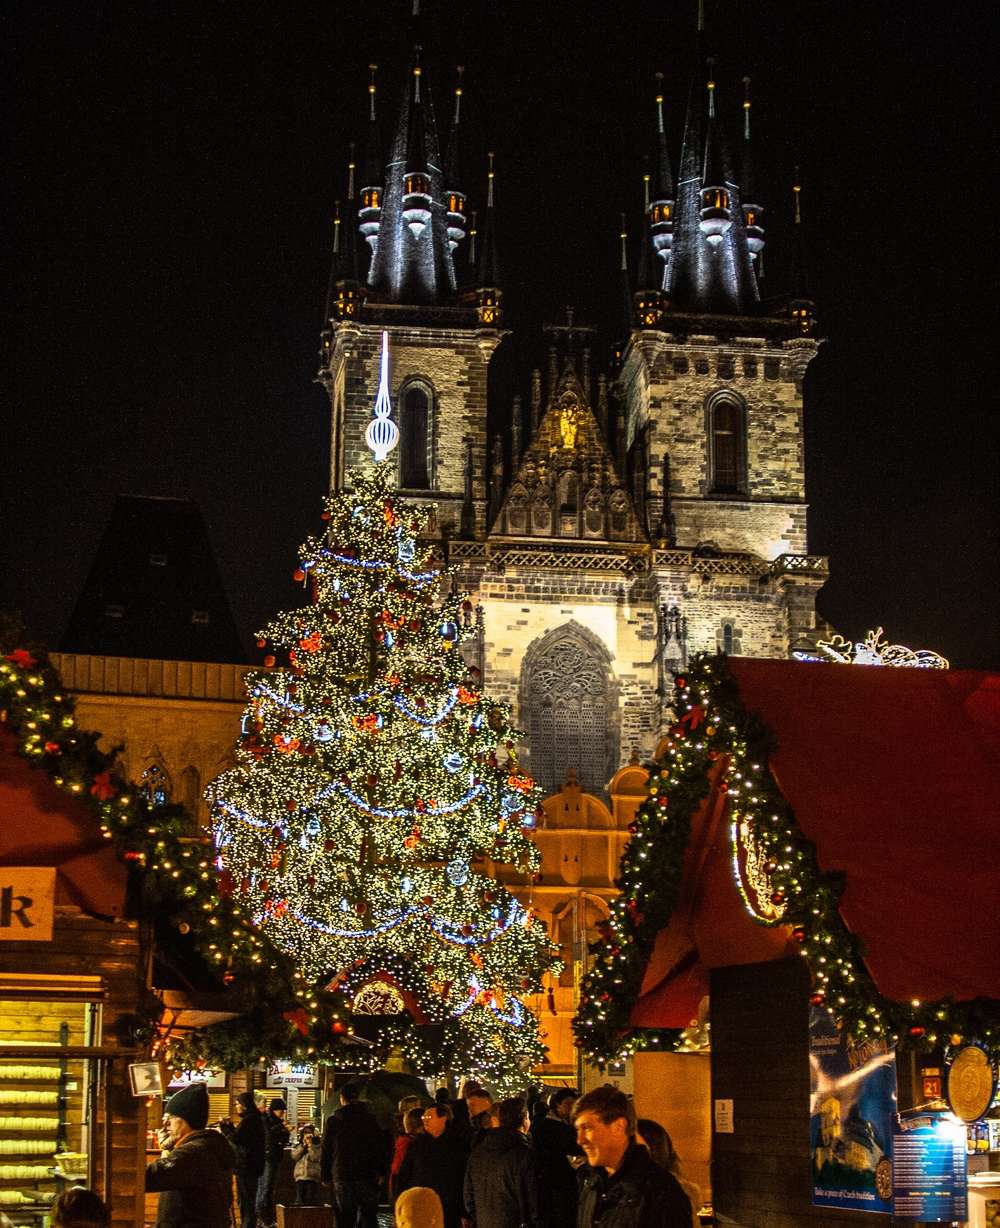 Beautiful Christmas Tree Pictures: Let's Travel The World!: 10 Most Beautiful Christmas Trees